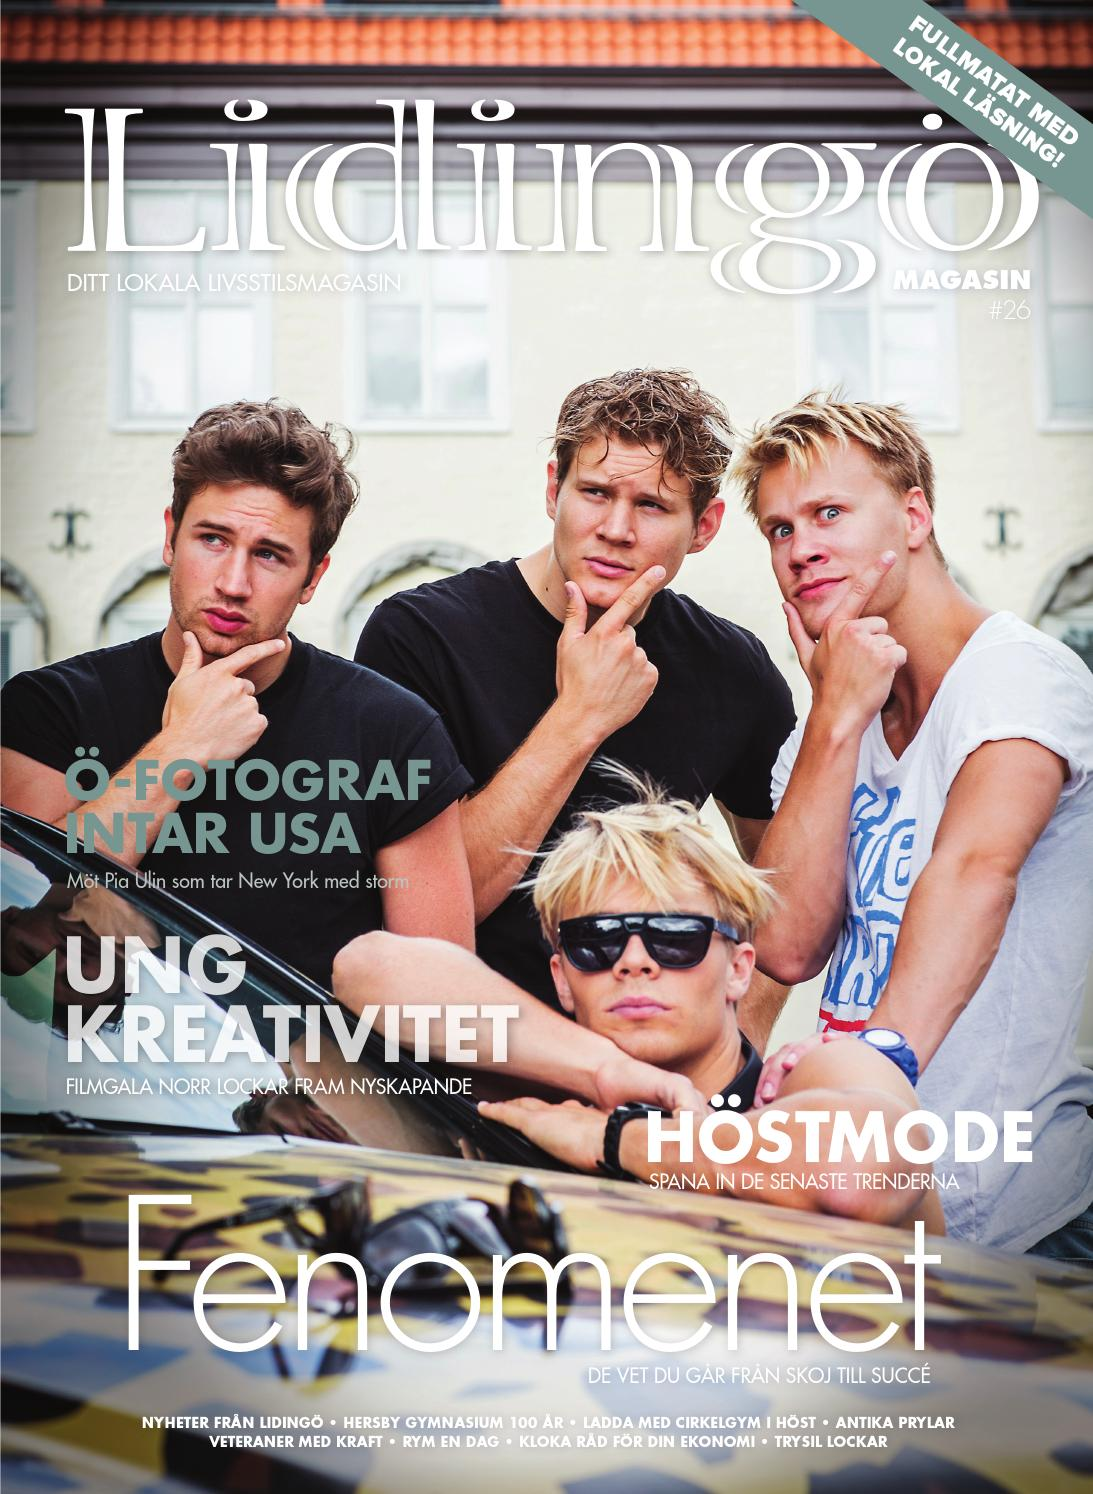 Sparkling magasin nr2 2012 by xxl reklam & kommunikation ab   issuu